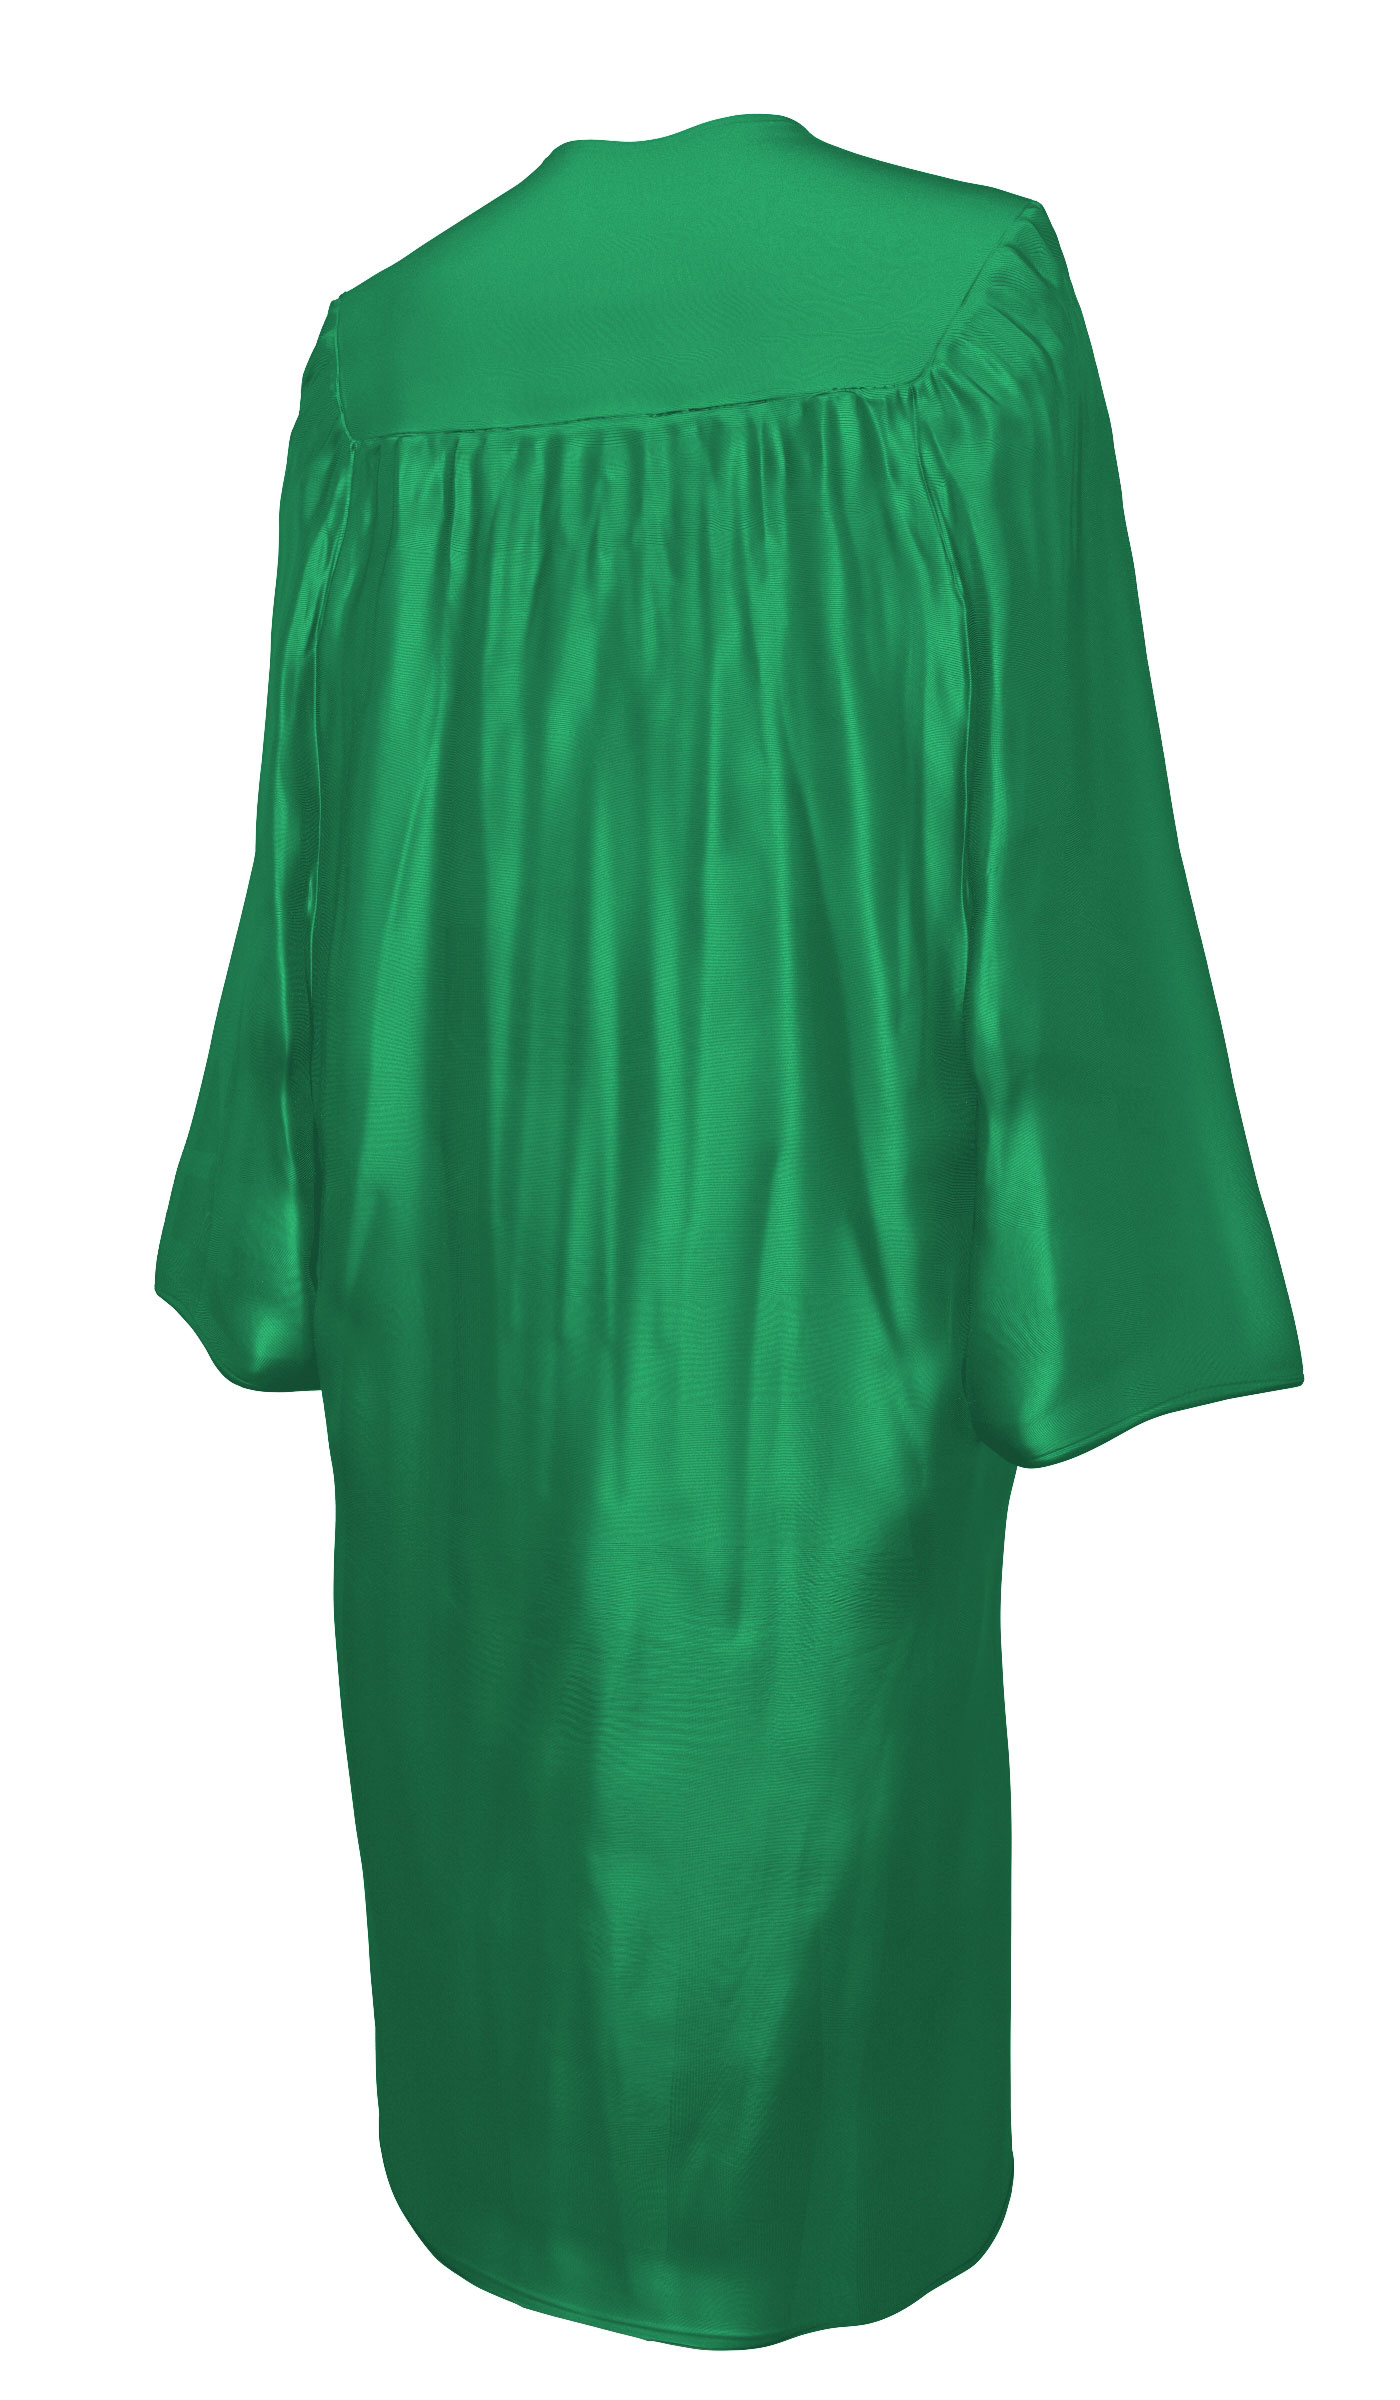 SHINY EMERALD GREEN CAP AND GOWN-rs4251465611171